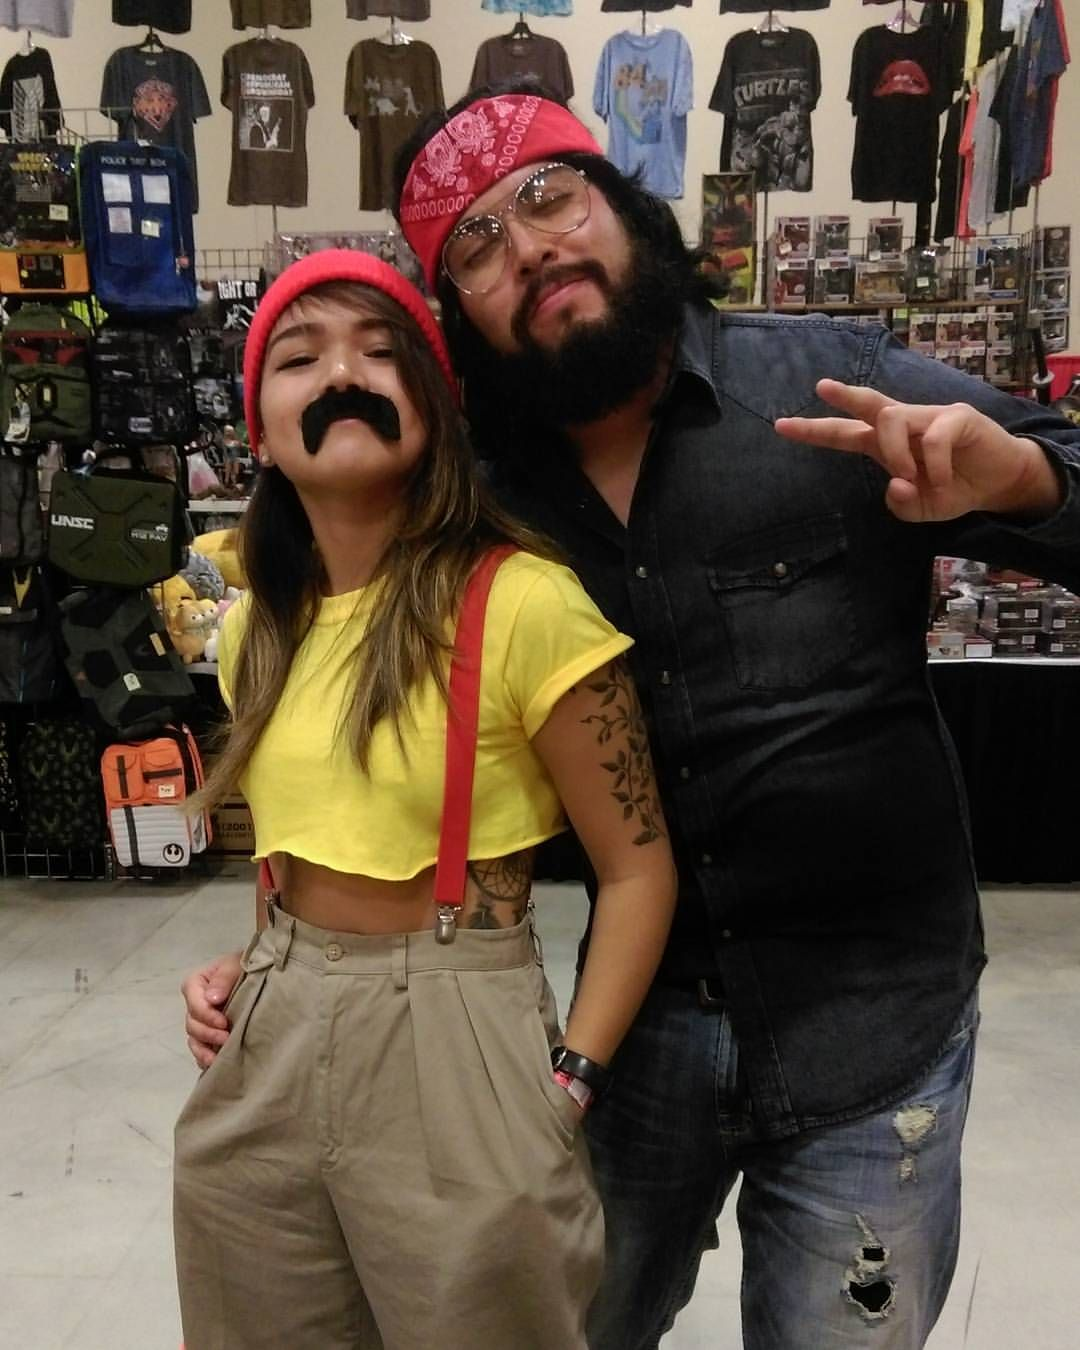 More Friday cosplay from #ACCC2016! Cheech and Chong ...